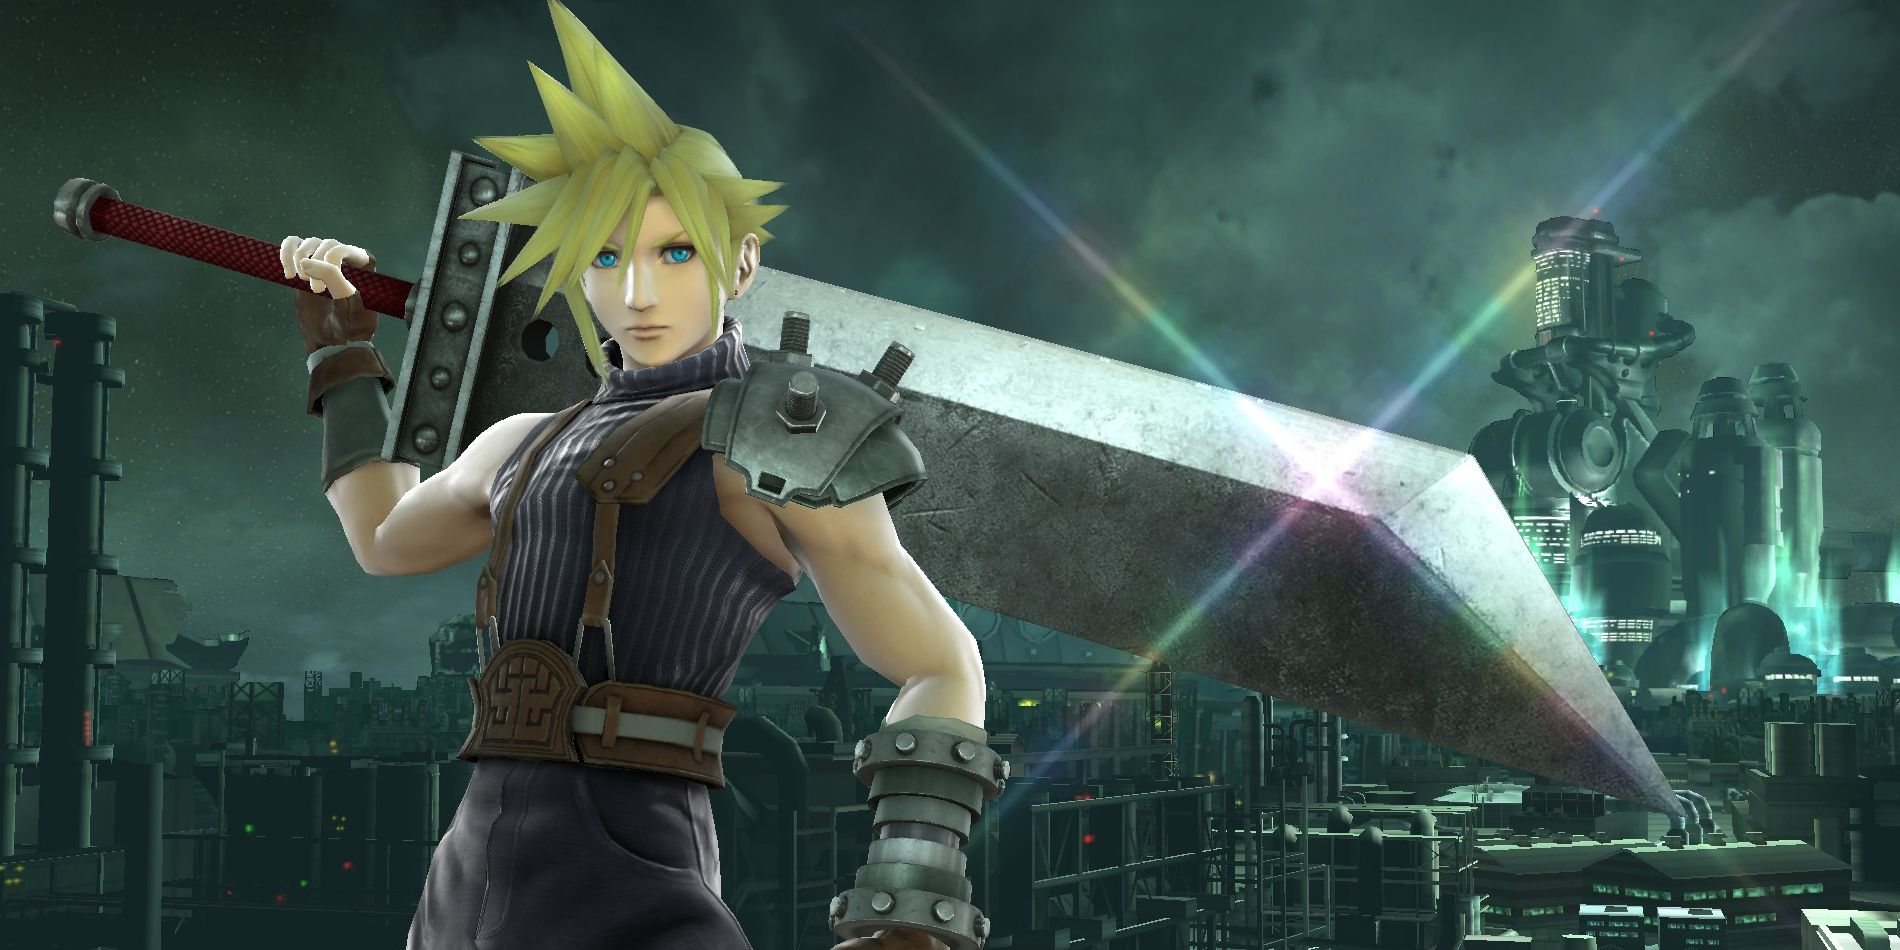 final fantasy facts about cloud strife screenrant